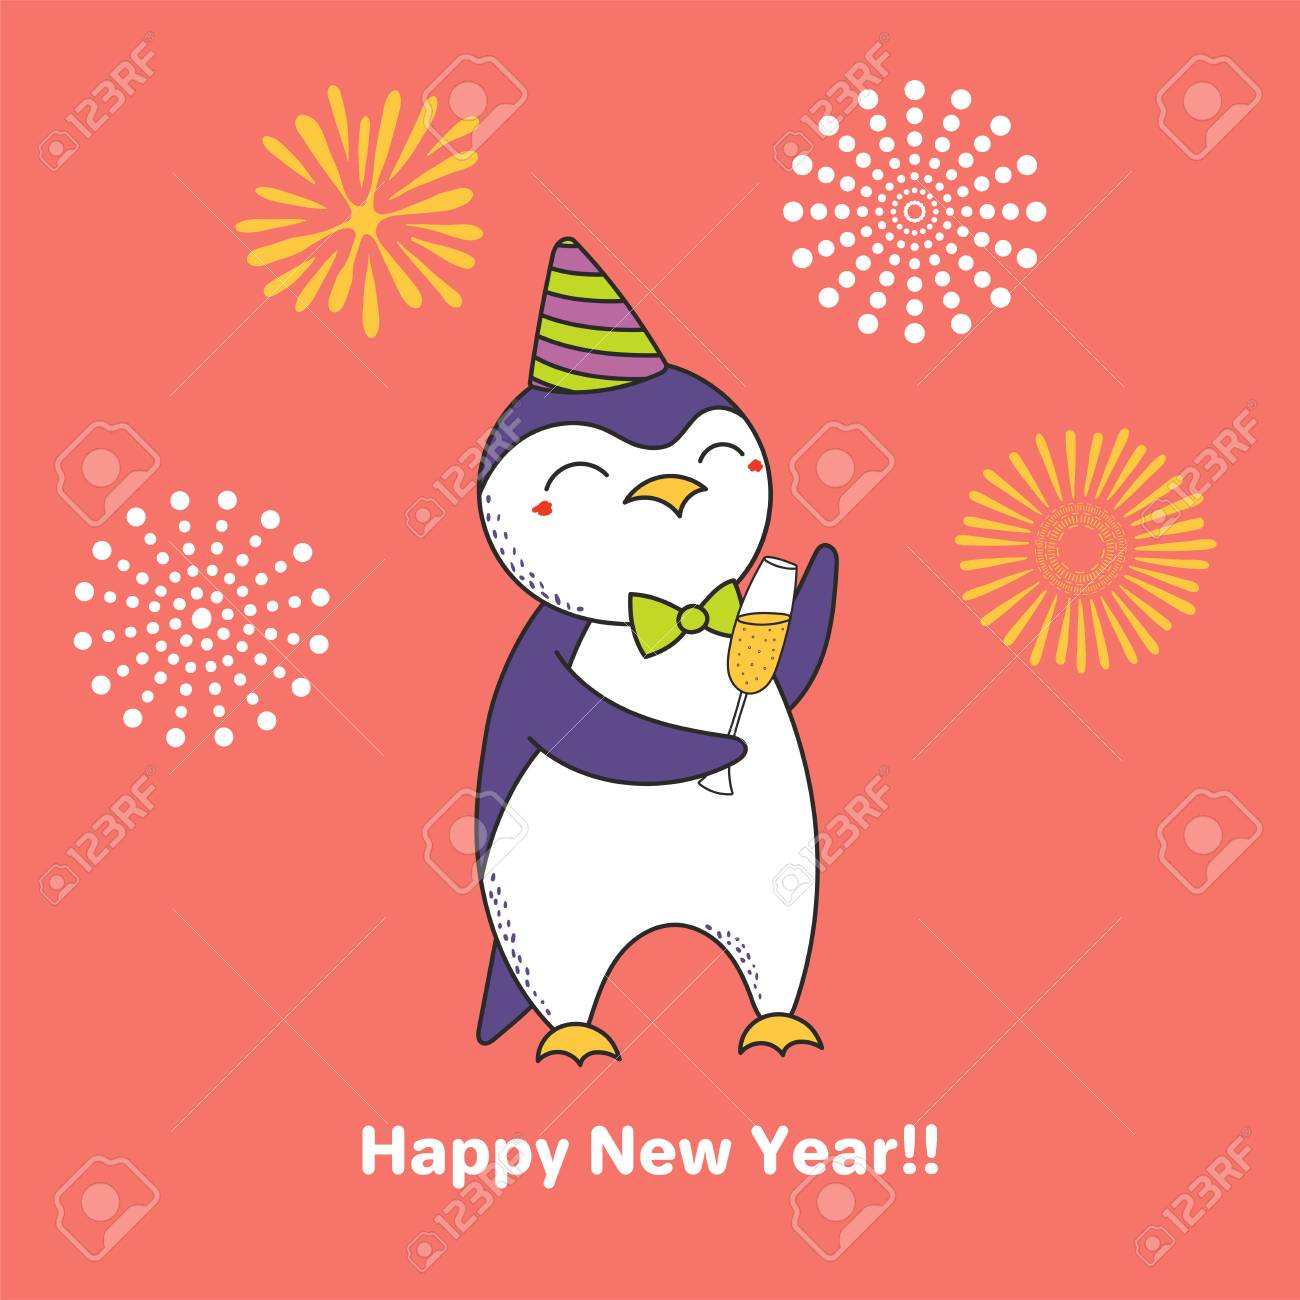 Hand drawn happy new year greeting card with cute funny cartoon hand drawn happy new year greeting card with cute funny cartoon penguin and a glass of m4hsunfo